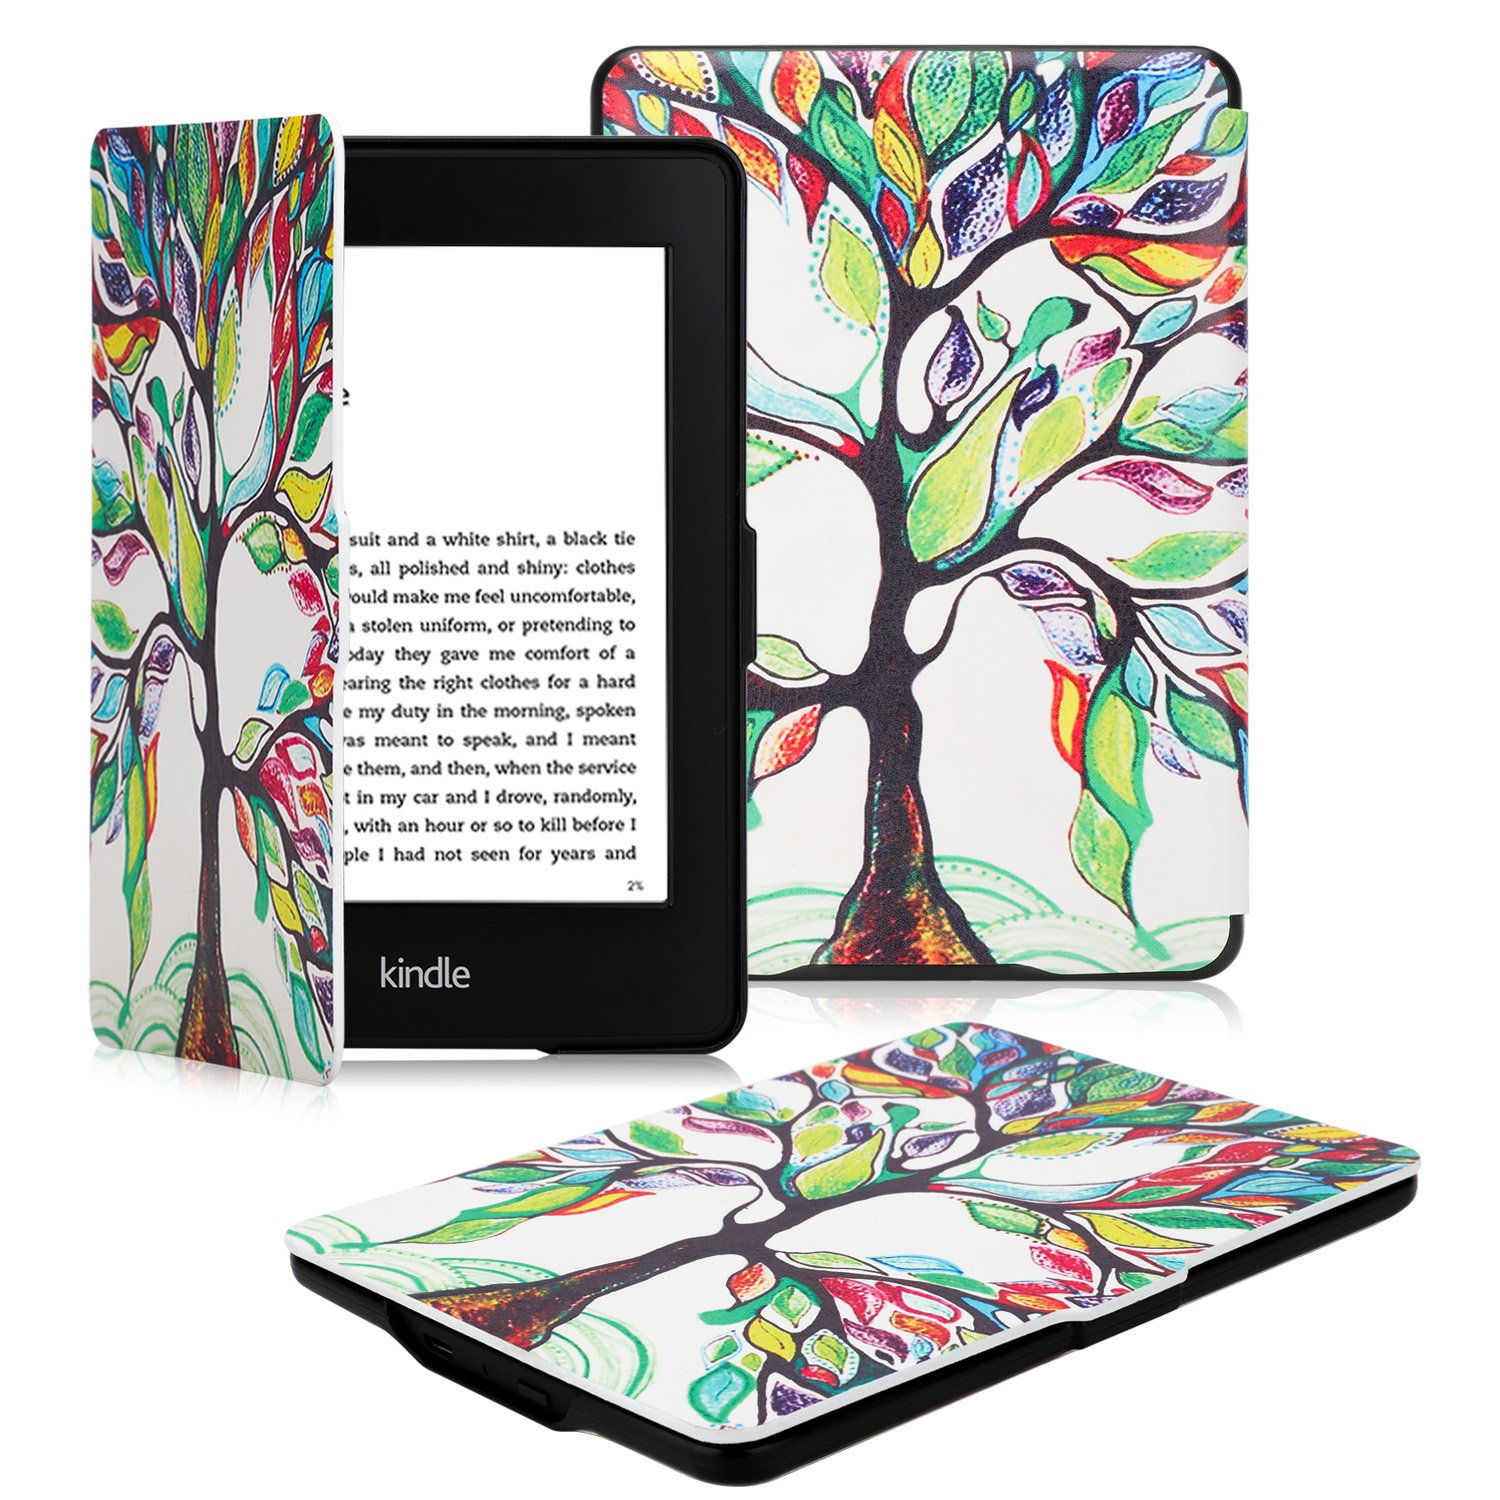 OMOTON Kindle Paperwhite Case Cover - The Thinnest Lightest PU Leather Smart Cover All-New Kindle Paperwhite (Fits All Versions: 2012, 2013, 2014 2015 All-New 300 PPI Versions), Love Tree